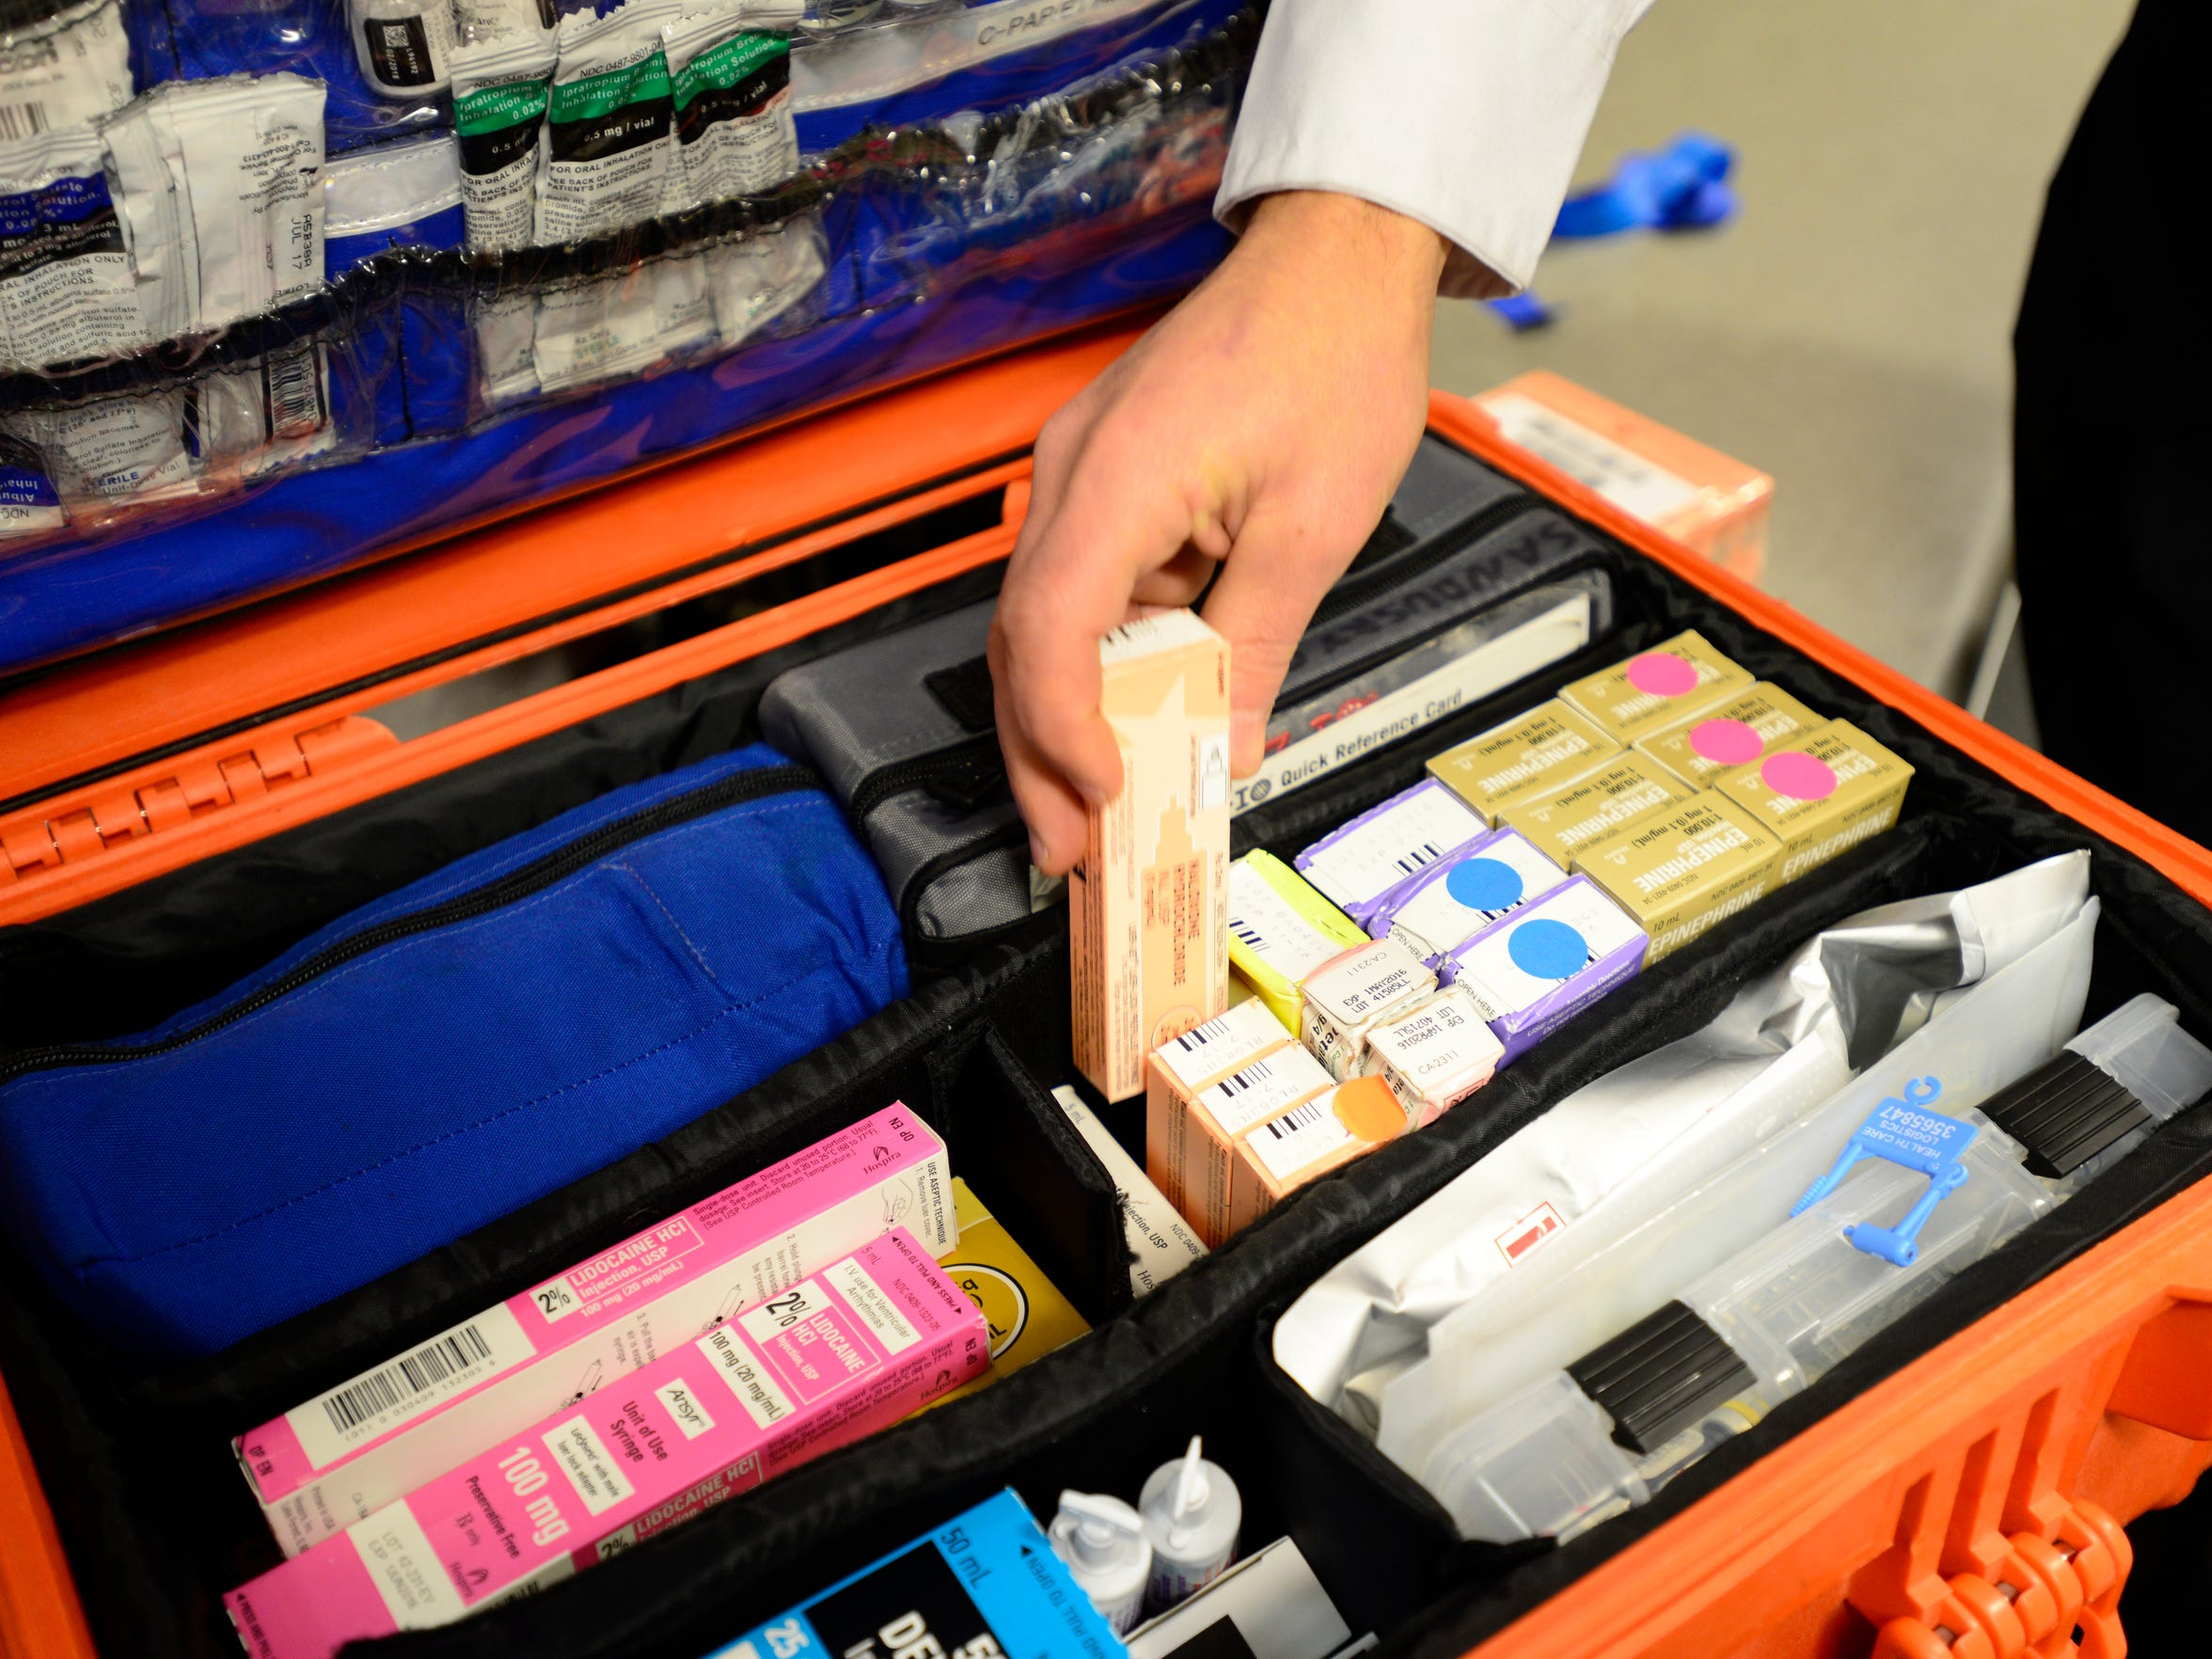 EMS revives people overdosing on heroin with the drug naloxone.